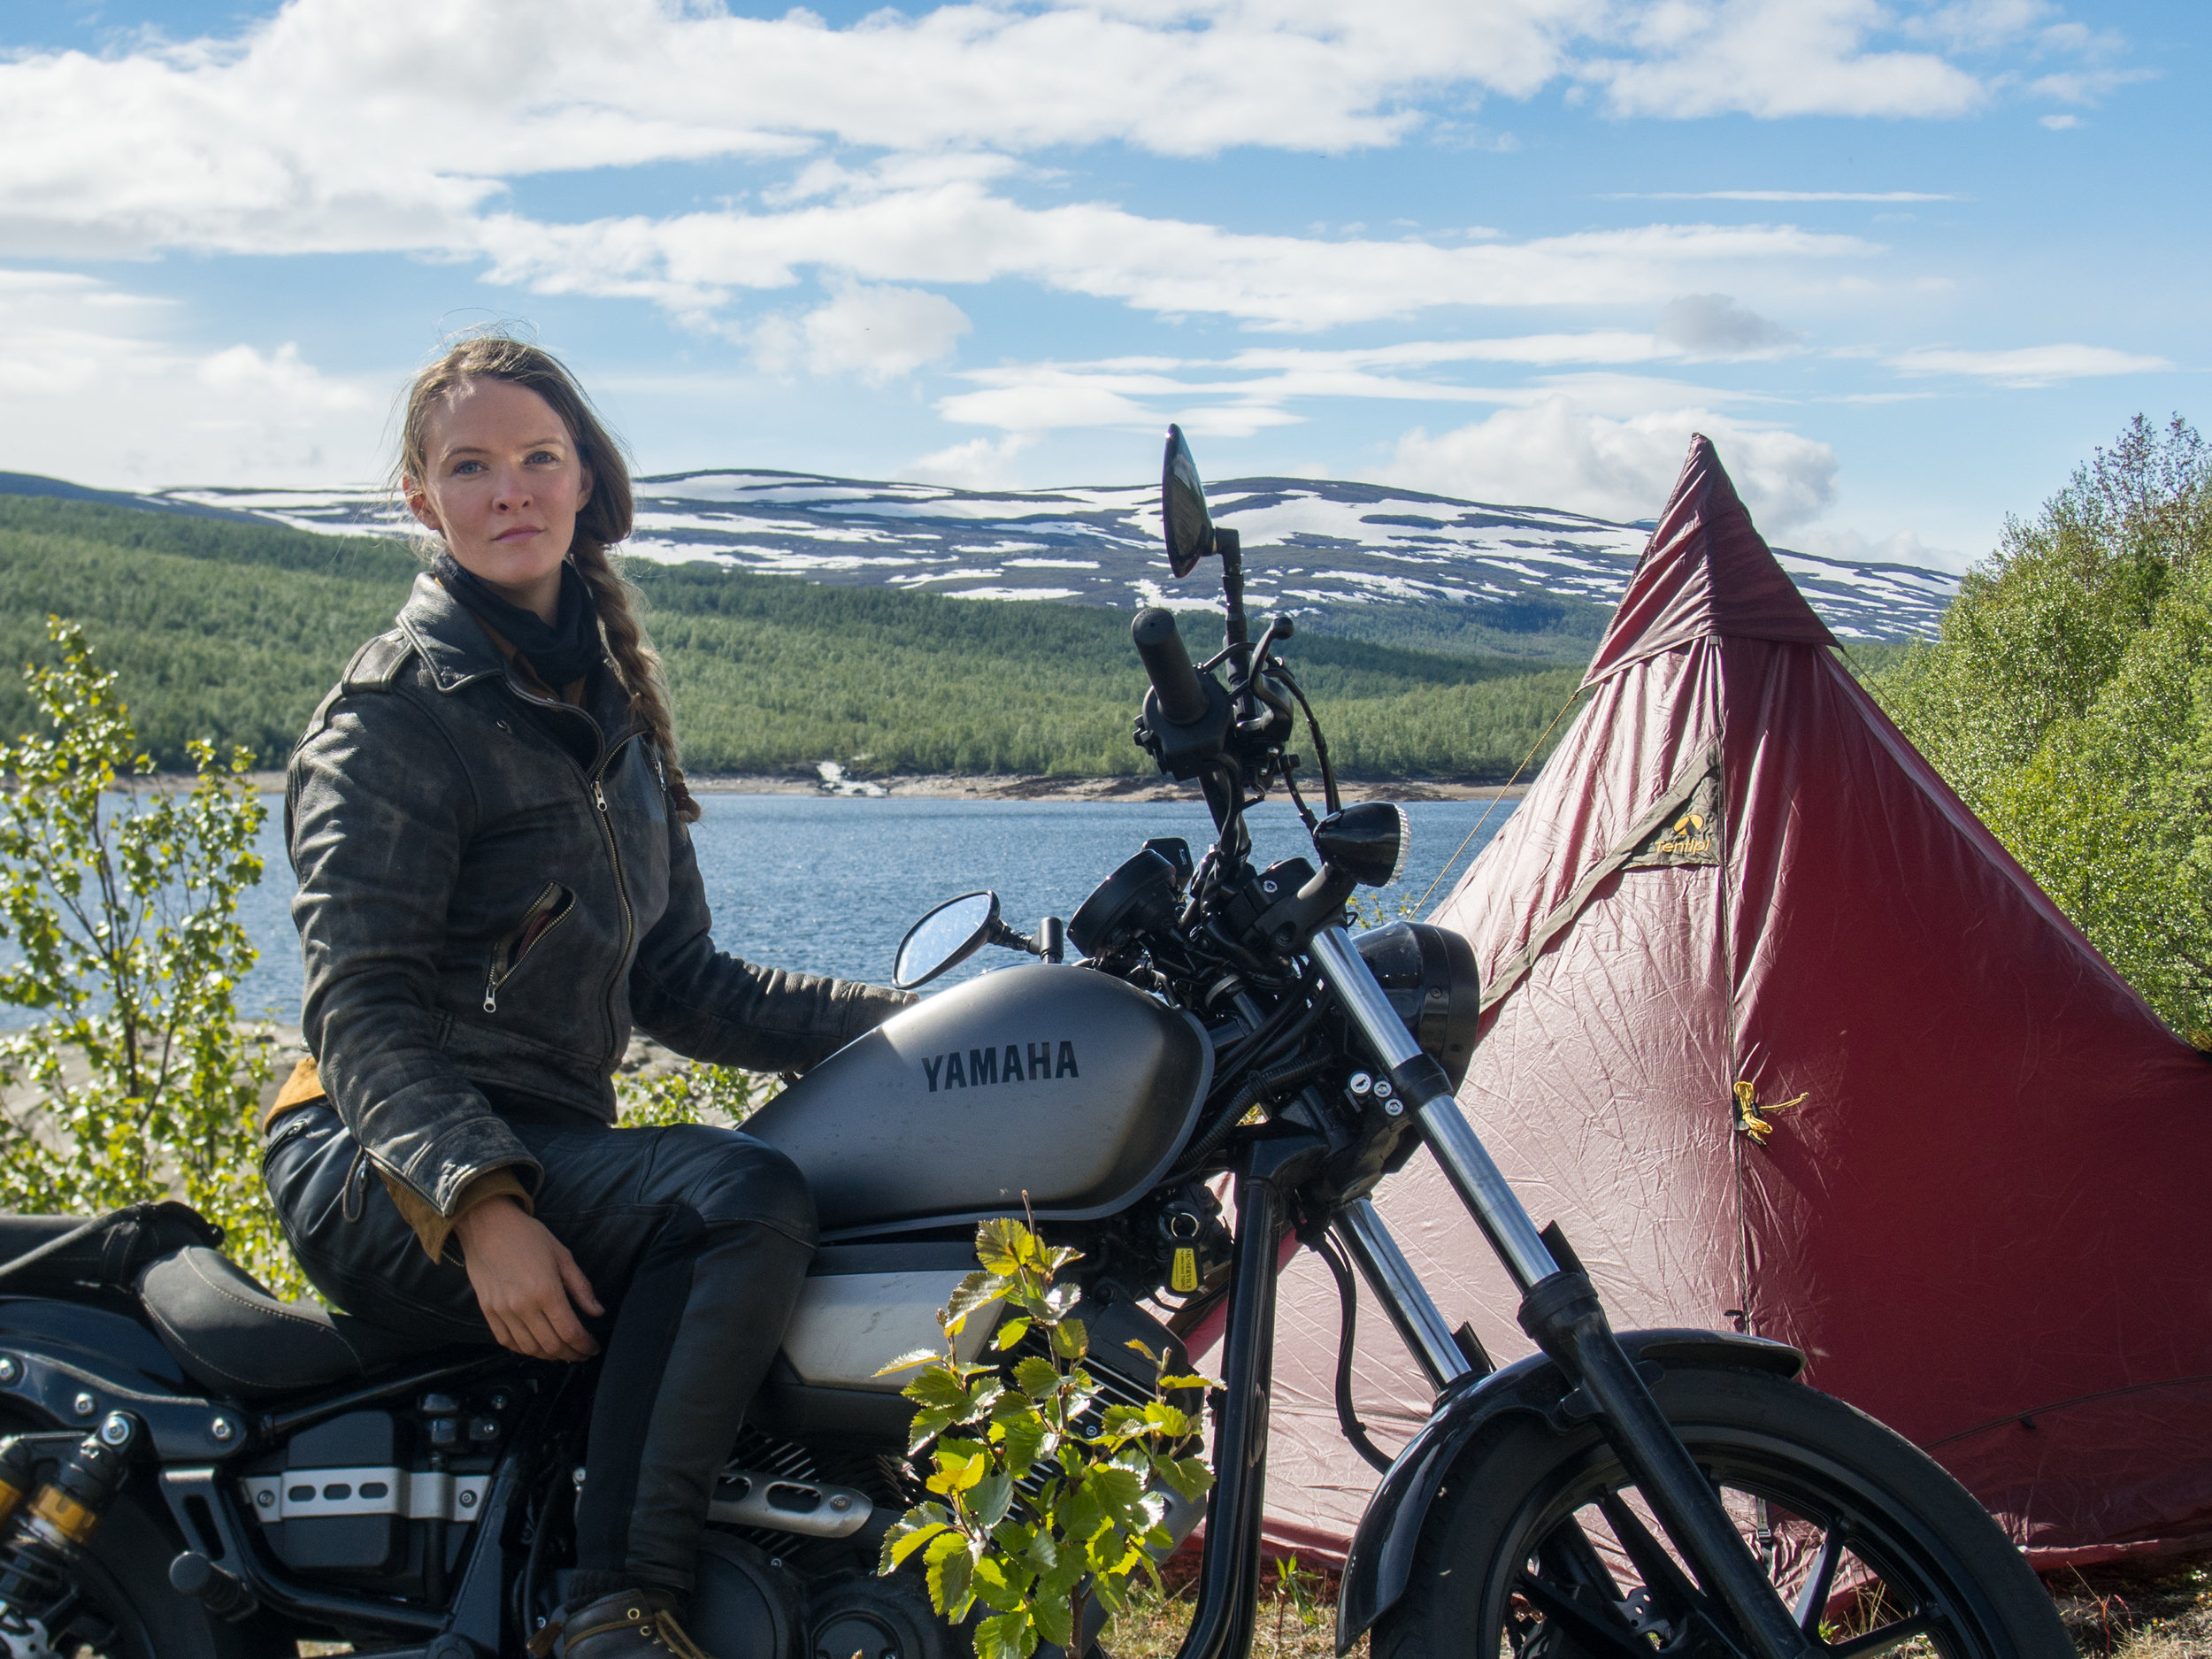 Stopping at an overlook on the way to Norway. My Yamaha Bolt 950 was generously supplied by  Tibro Mc Service  and my camping gear by Swedish Company  Tentipi Tents